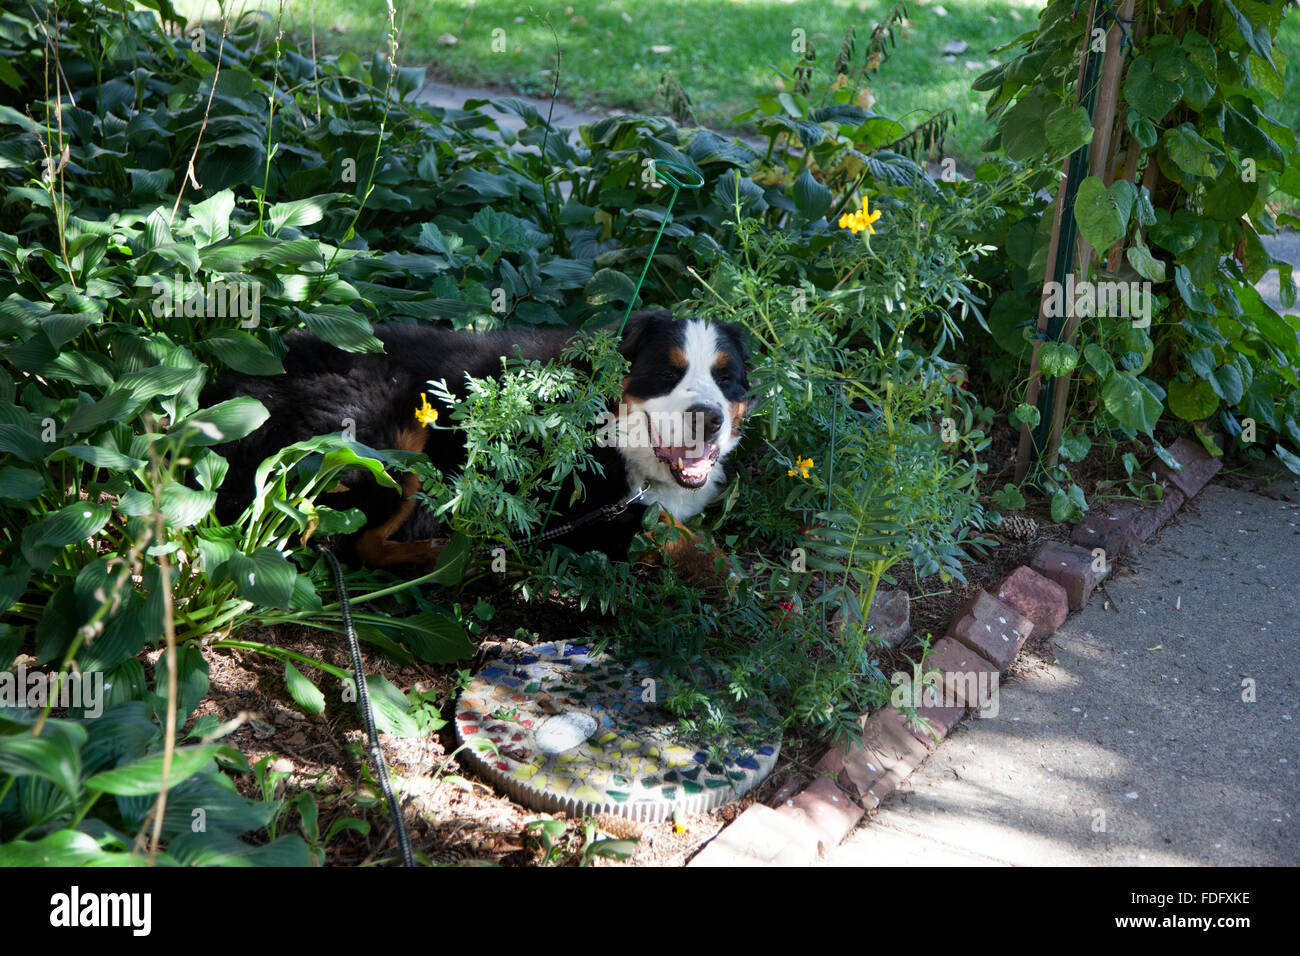 Bernese Mountain Dog shamelessly cooling off in my garden. St Paul Minnesota MN USA - Stock Image